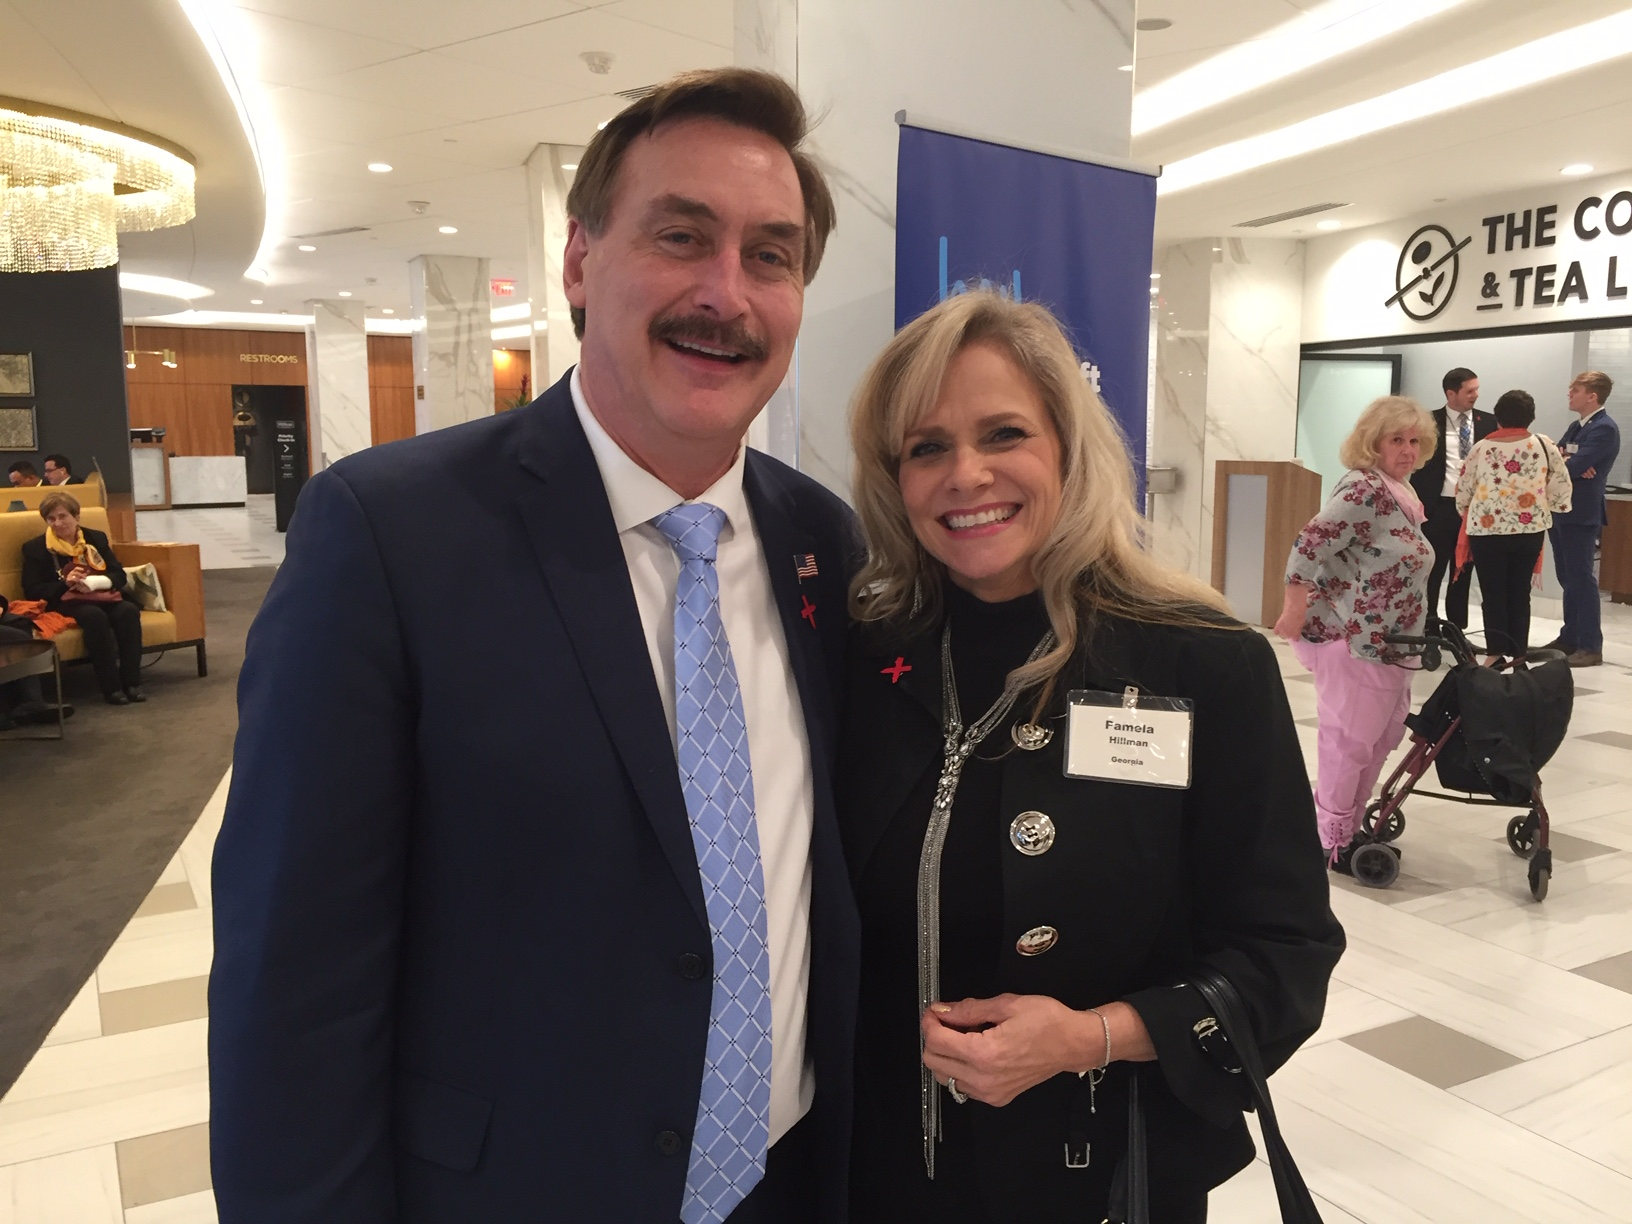 """Pamela with mike lindell, founder of mypillow - I met Mike Lindell, My Pillow Guy, in Washington, DC at the National Prayer Breakfast that my husband I attended. After hearing my story he said, """"This is one of two divine appointments I have had here. You are one of them."""" Since then we have been discussing many collaborative projects to partner. Stay tuned!"""